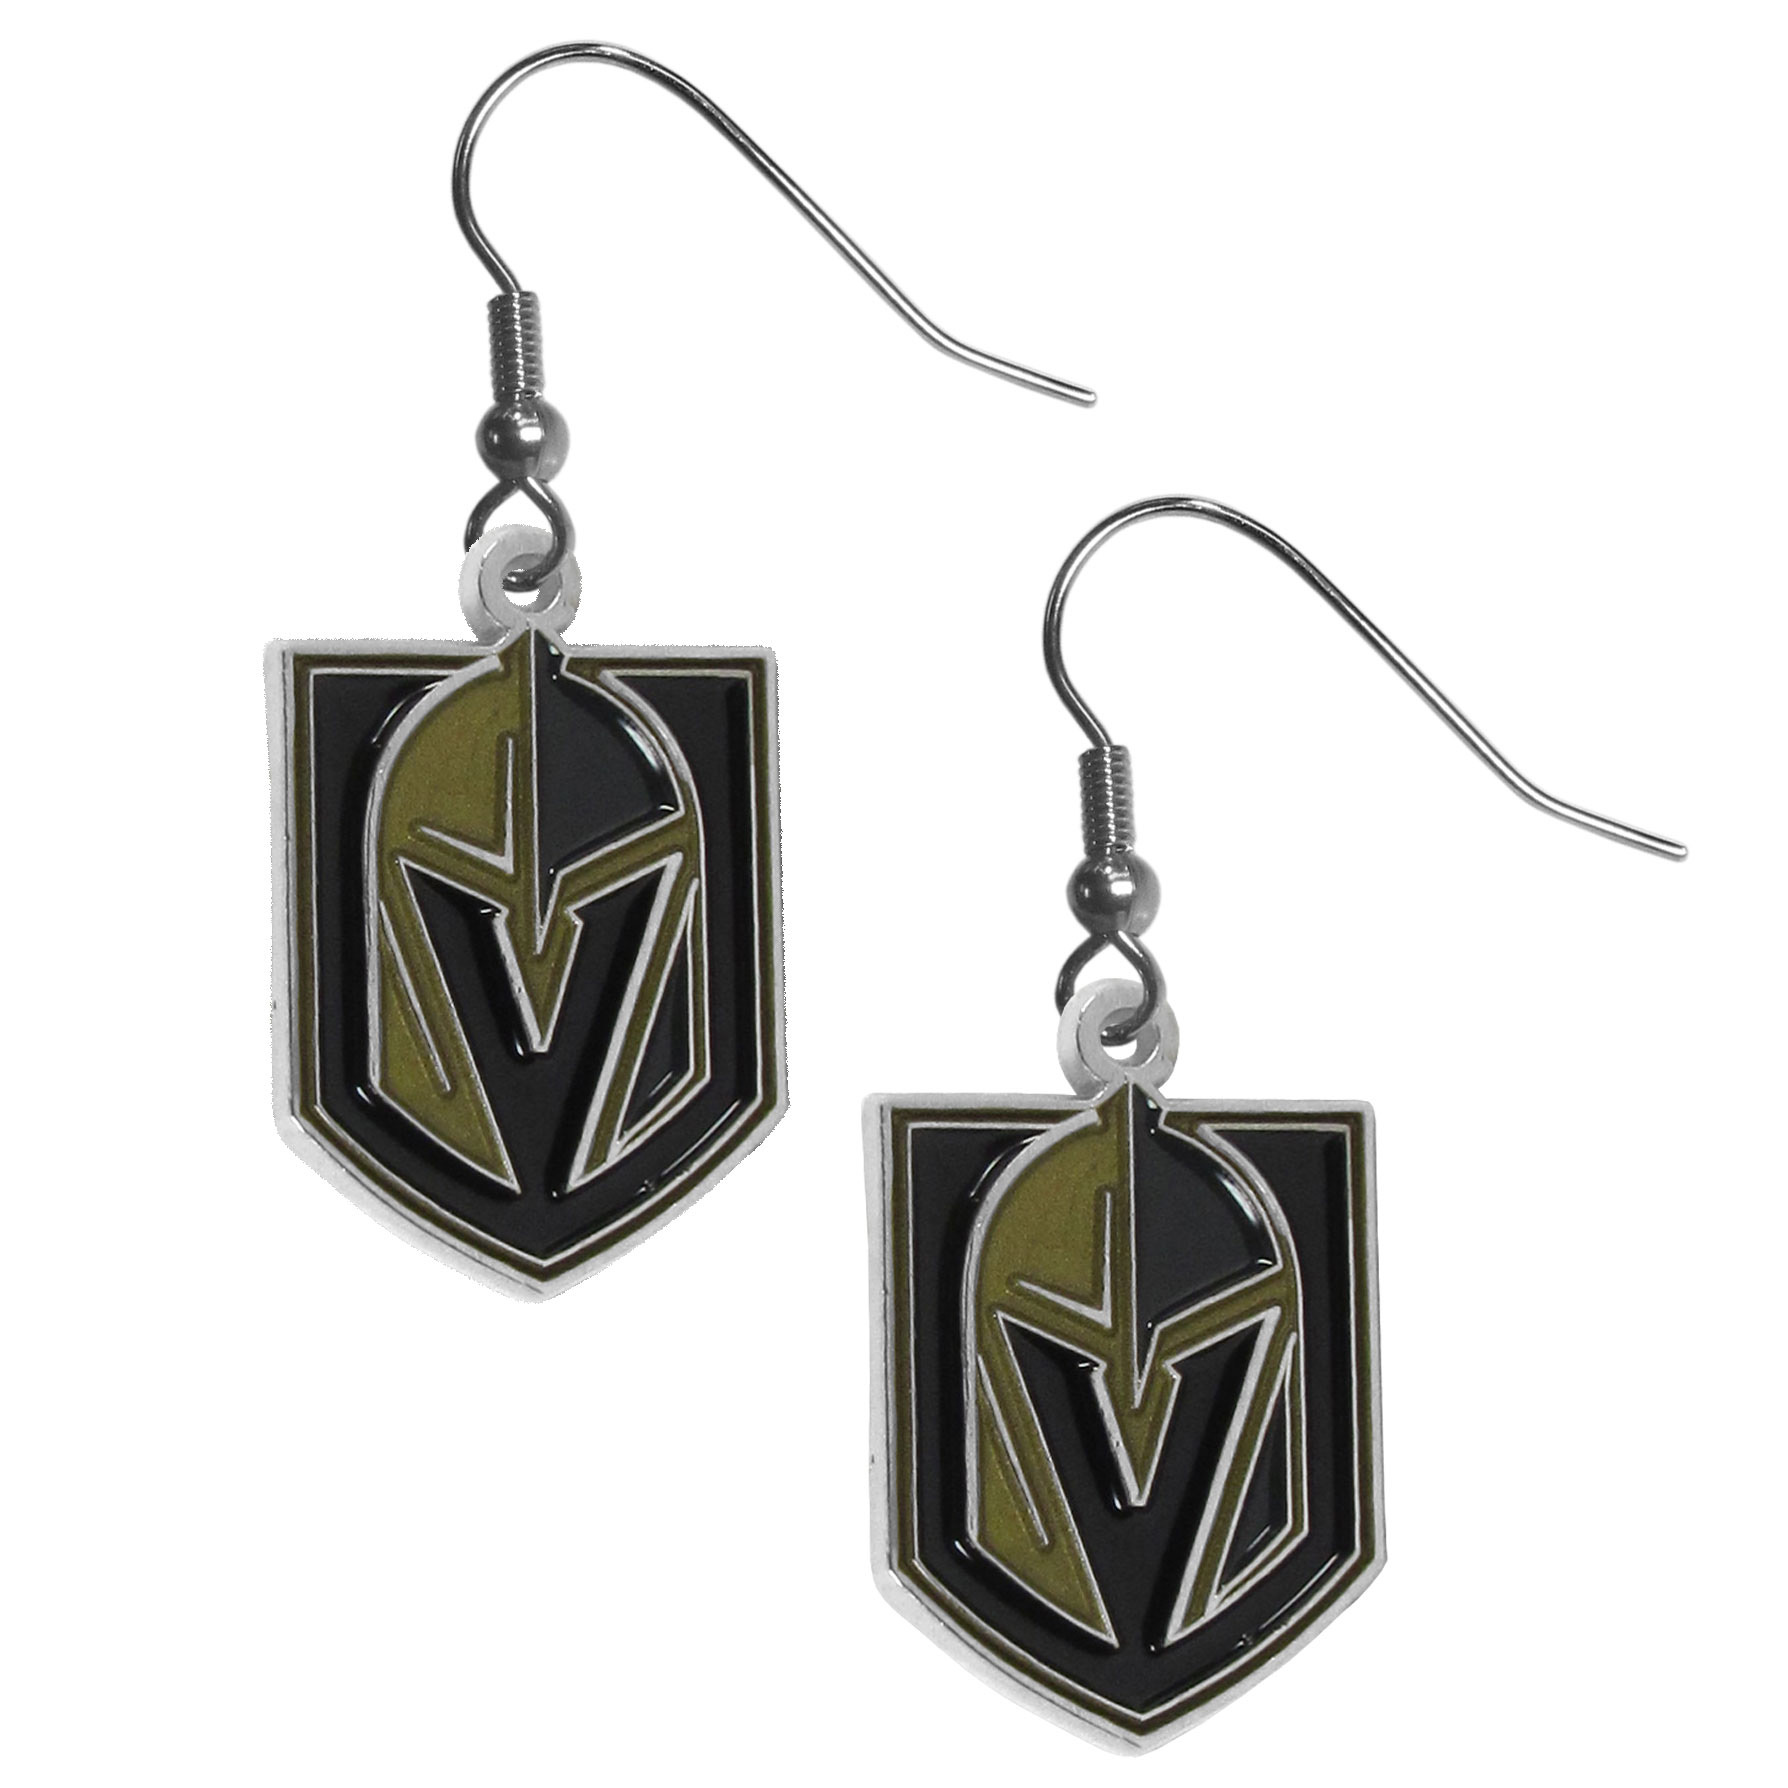 Las Vegas Golden Knights® Chrome Dangle Earrings - These on fleek Las Vegas Golden Knights® Dangle earrings are a lightweight and casual fashion earring with a striking team charm. These trendy understated earrings feature a carved and detailed enameled charm. Sporty meets fashion-forward with these spirited earrings that would make the perfect gift for any female fan. These trendy earrings are the perfect for every day but especially fun to glam up on game-day.